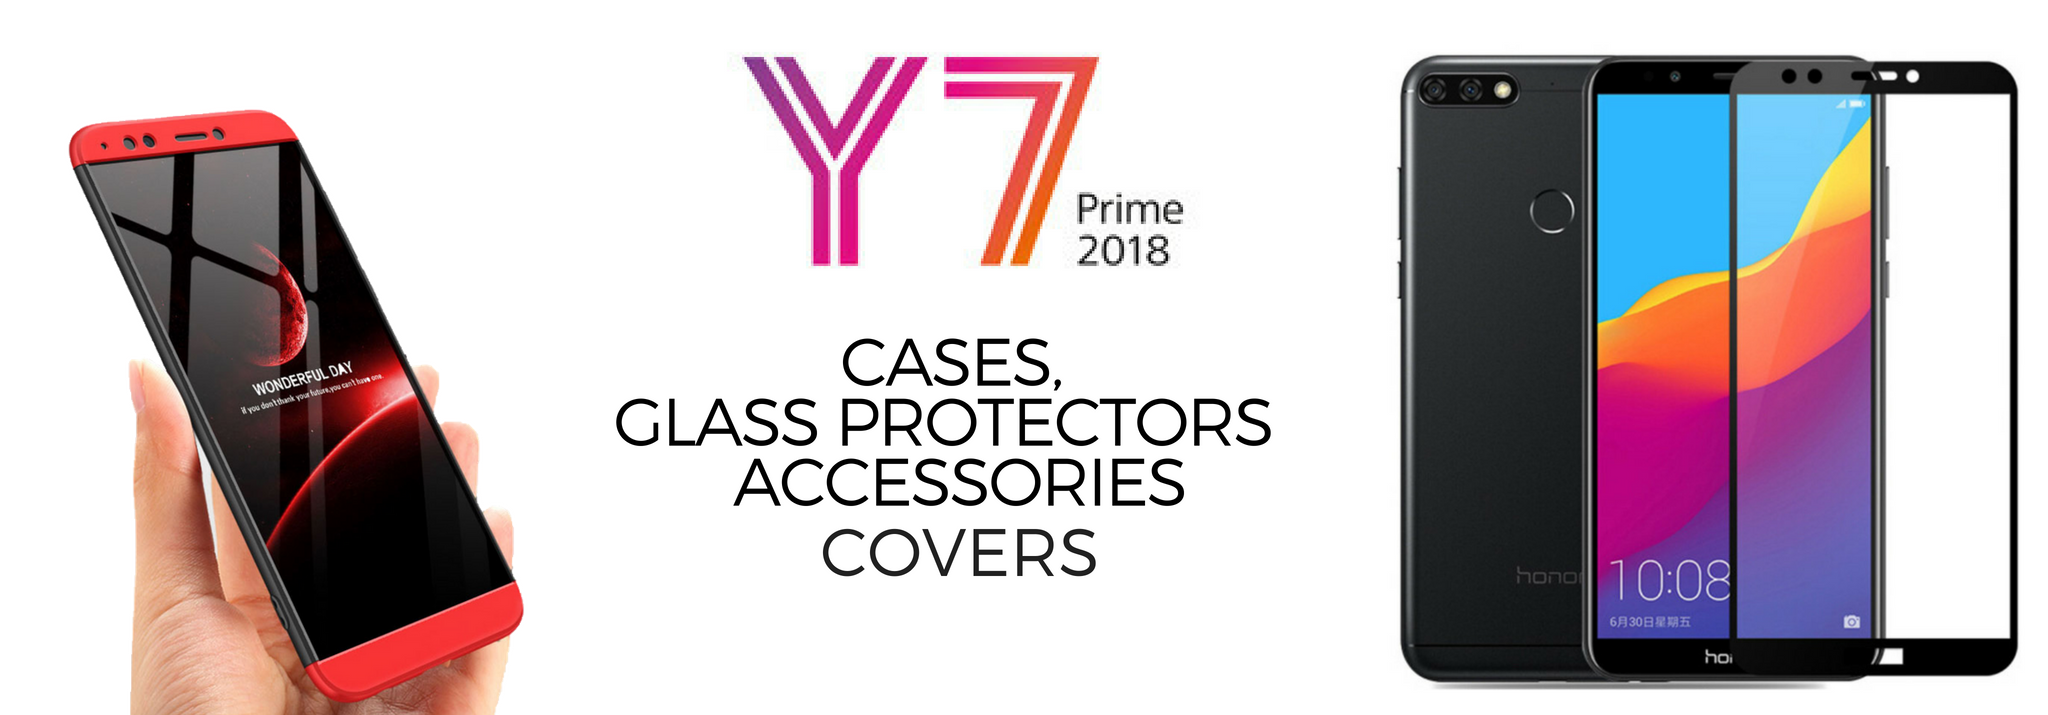 Huawei Y7 Prime (2018) cases, glass covers, accessories in Pakistan